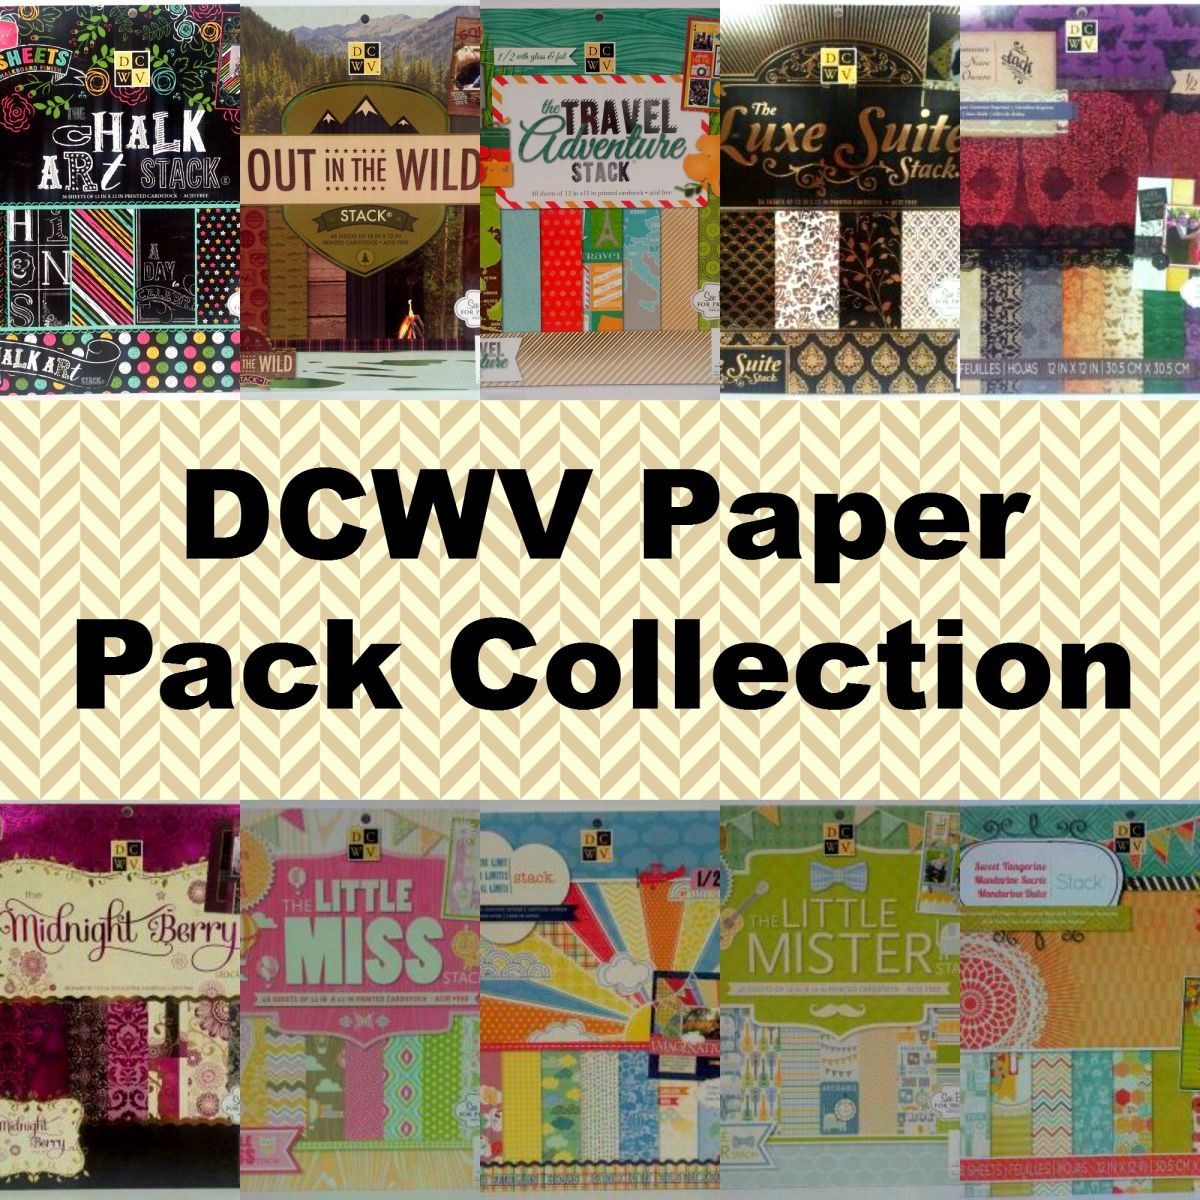 DCWV Paper Pack Collection